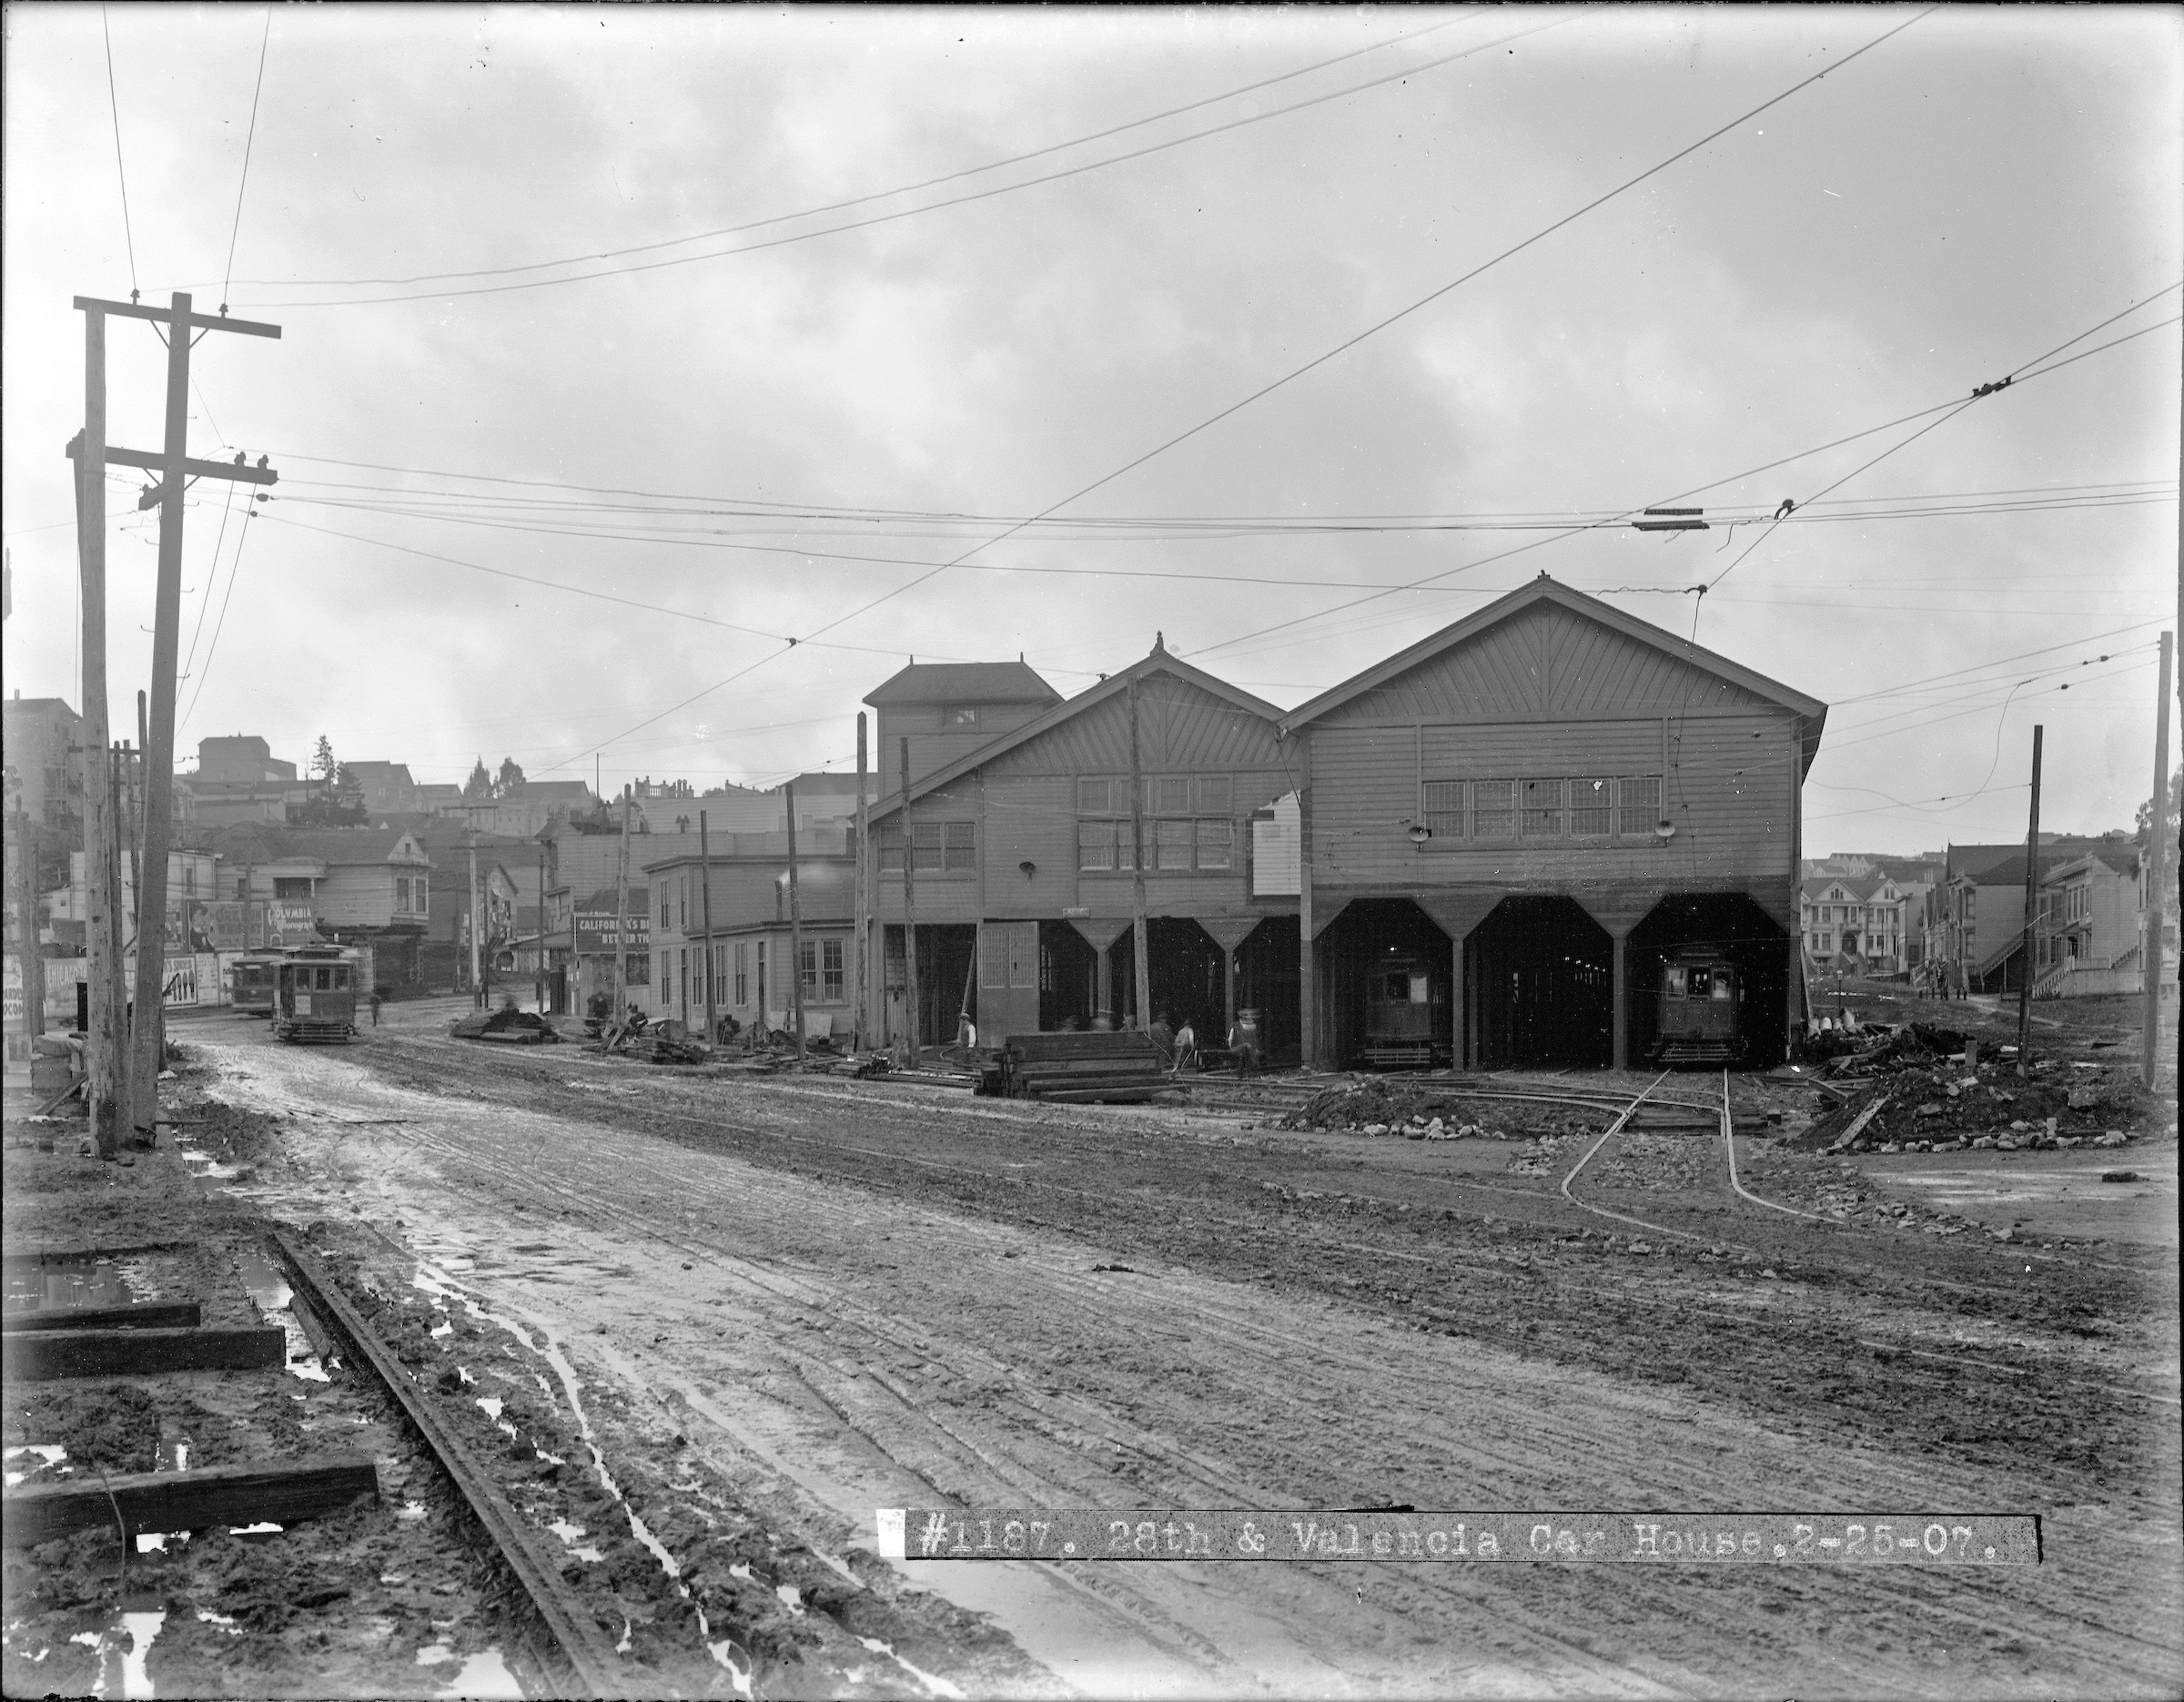 1907 Valencia Car house, Tiffany Ave on right. Courtesy SFMTA http://sfmta.photoshelter.com